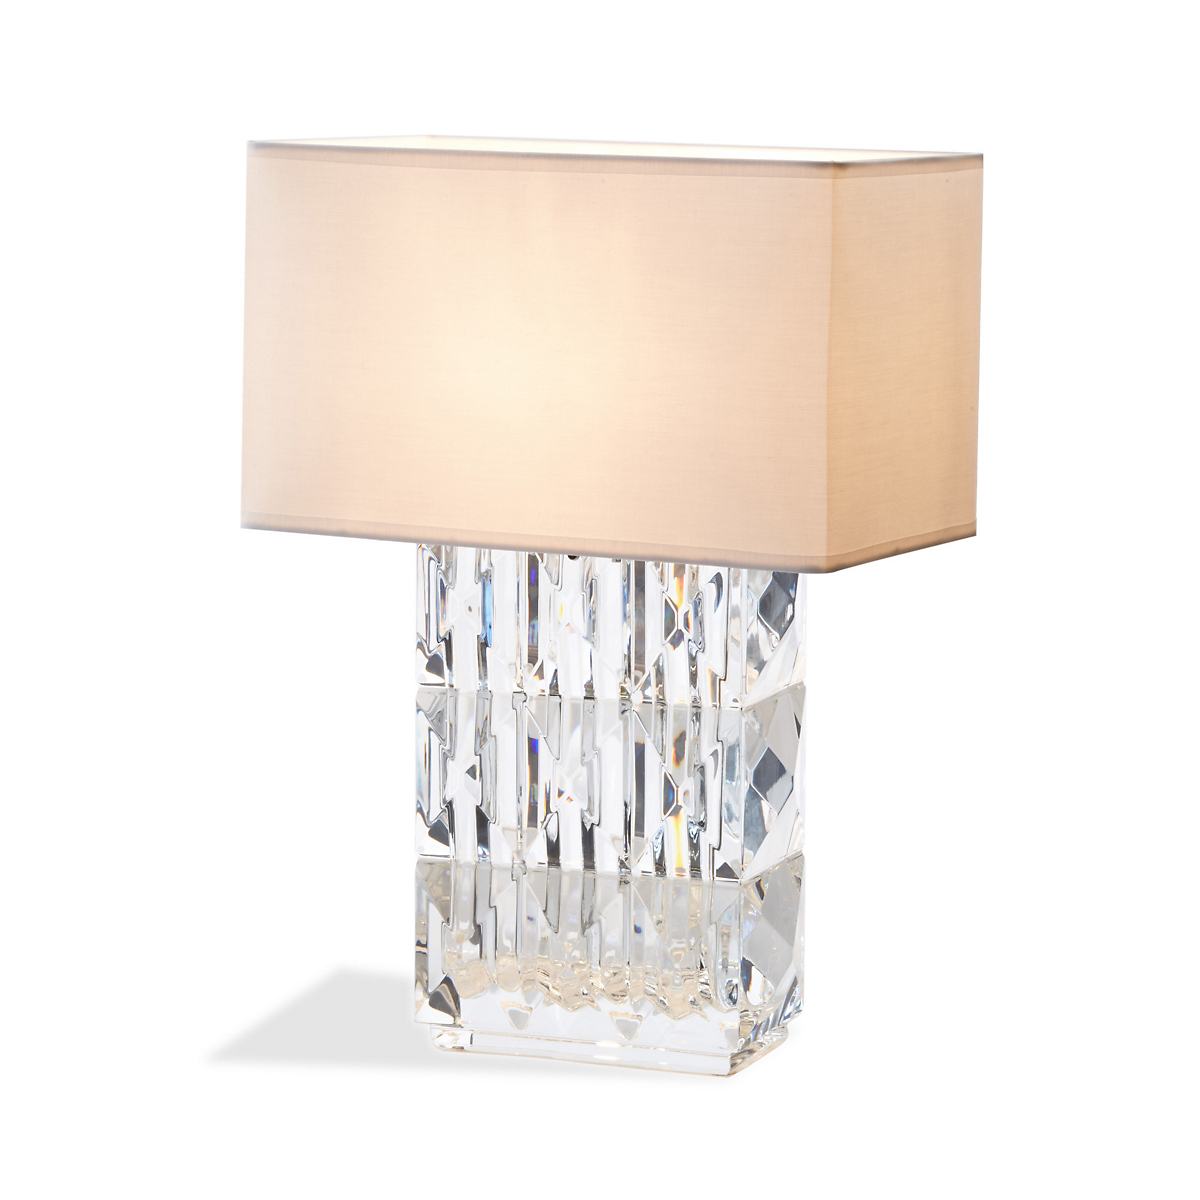 Baccarat Louxor Table Lamp